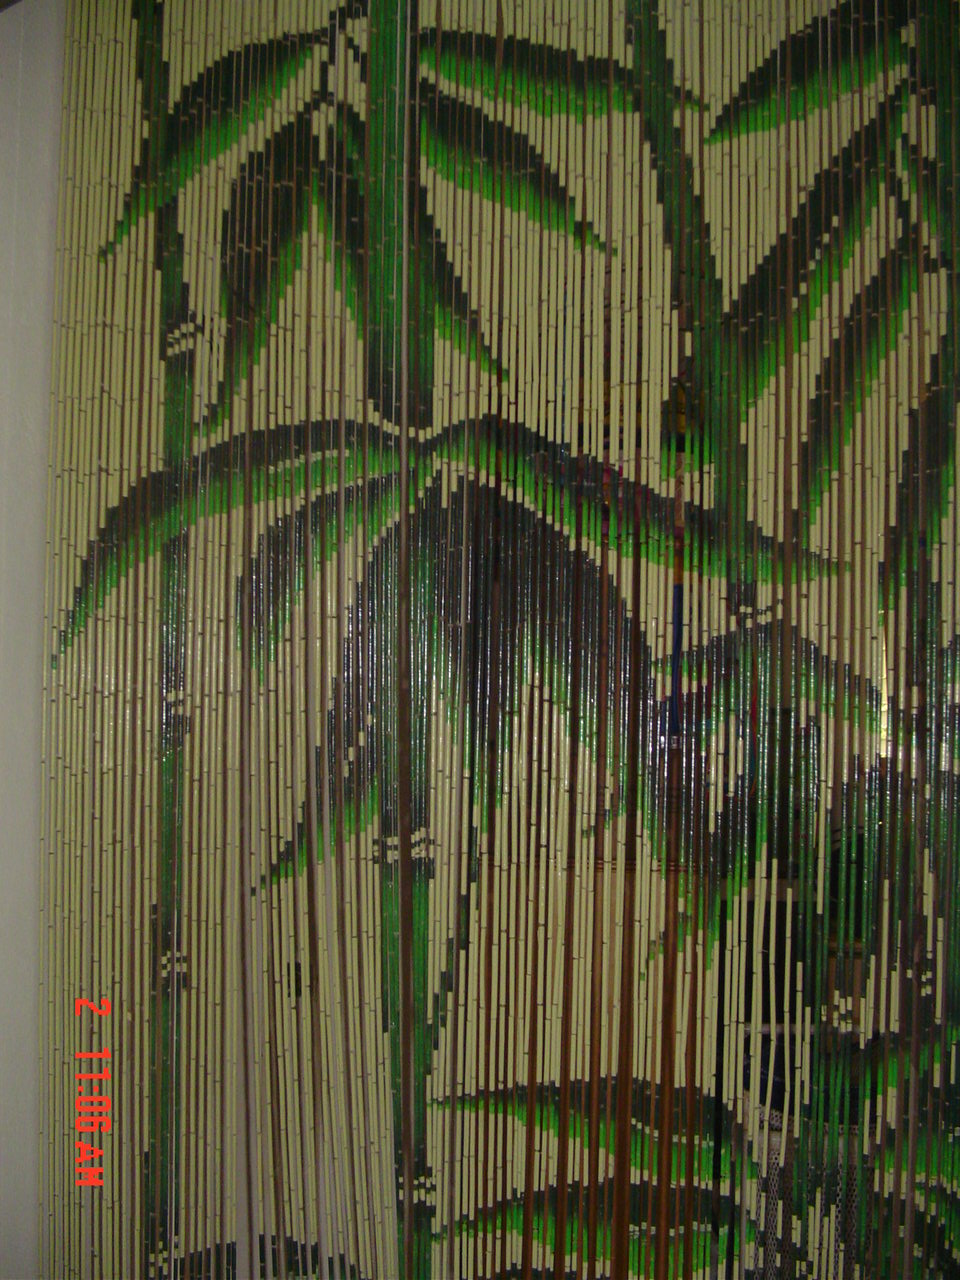 Printed Bamboo Curtain-Printed Bamboo Curtain Manufacturers